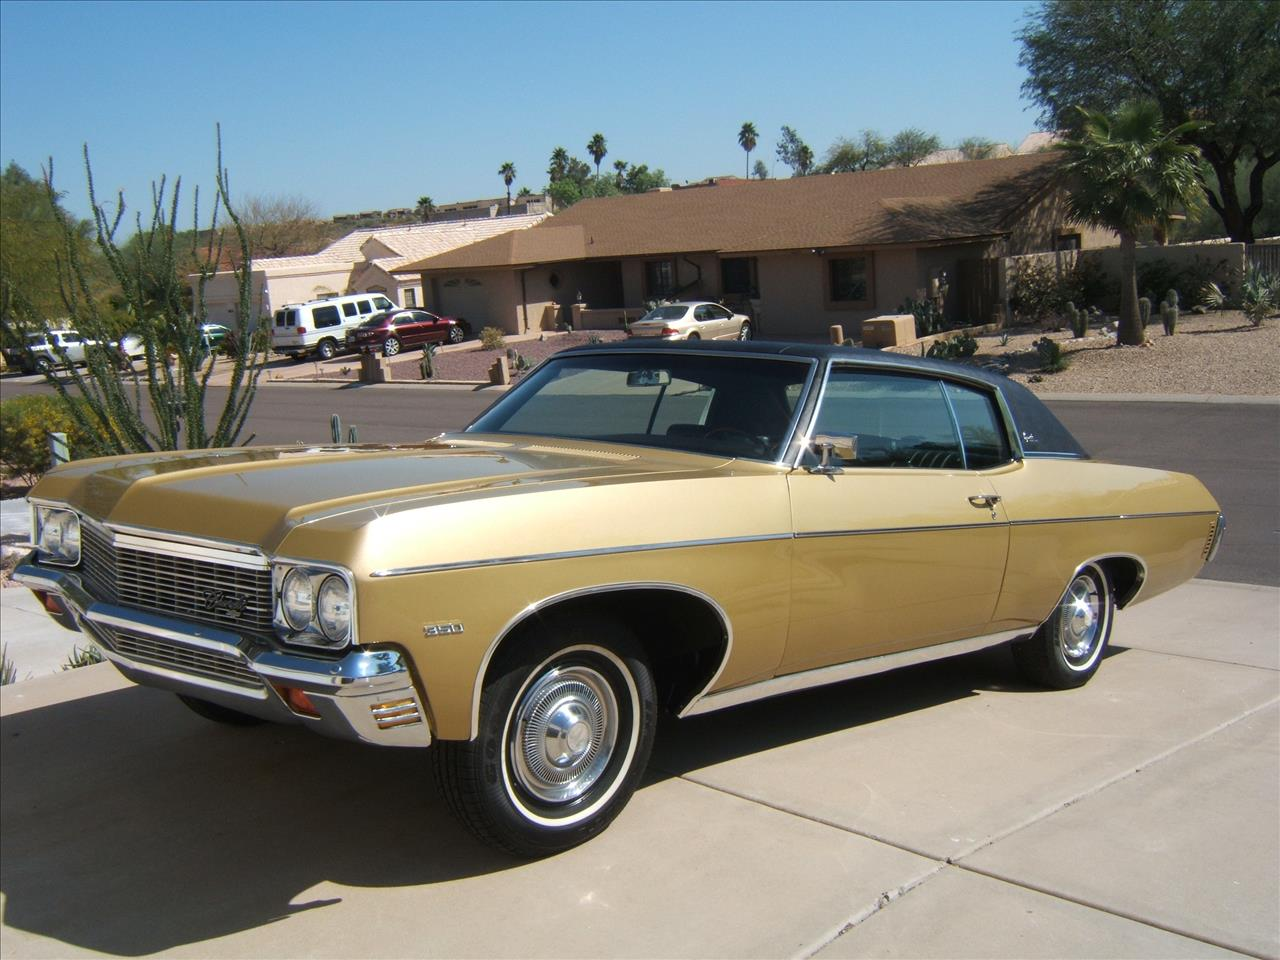 1970 Chevrolet Impala For Sale Carsforsale Com